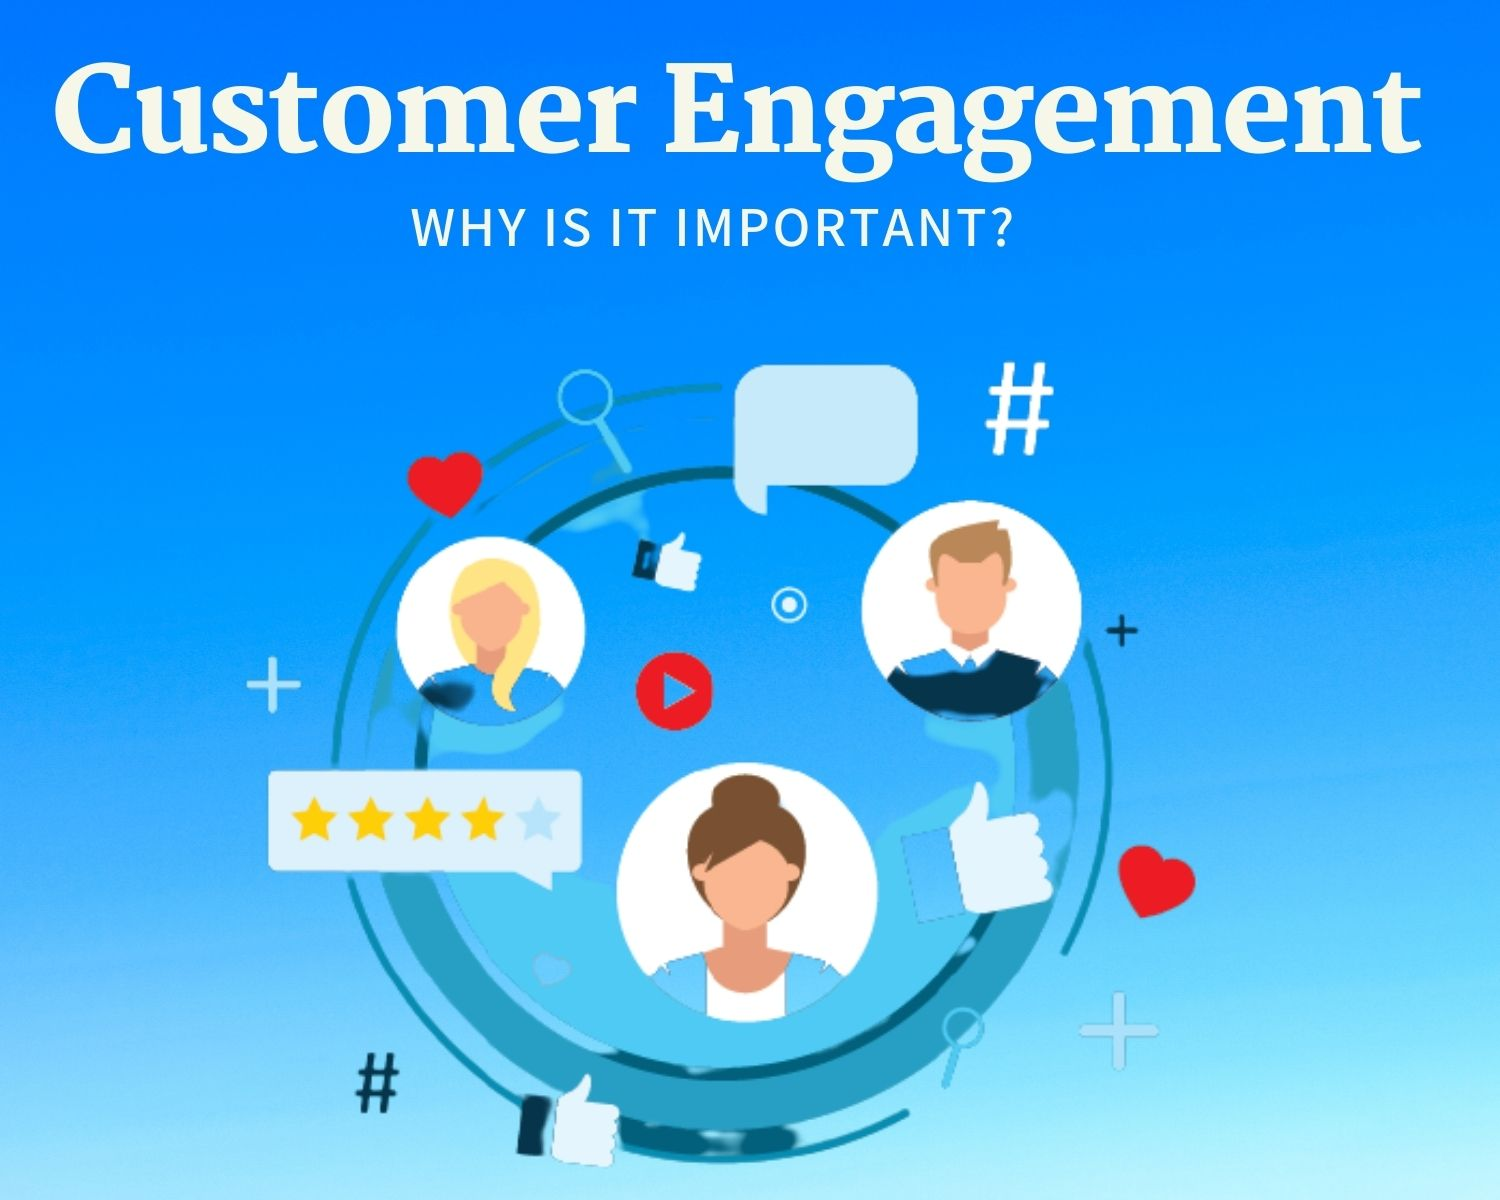 what is Customer Engagement?